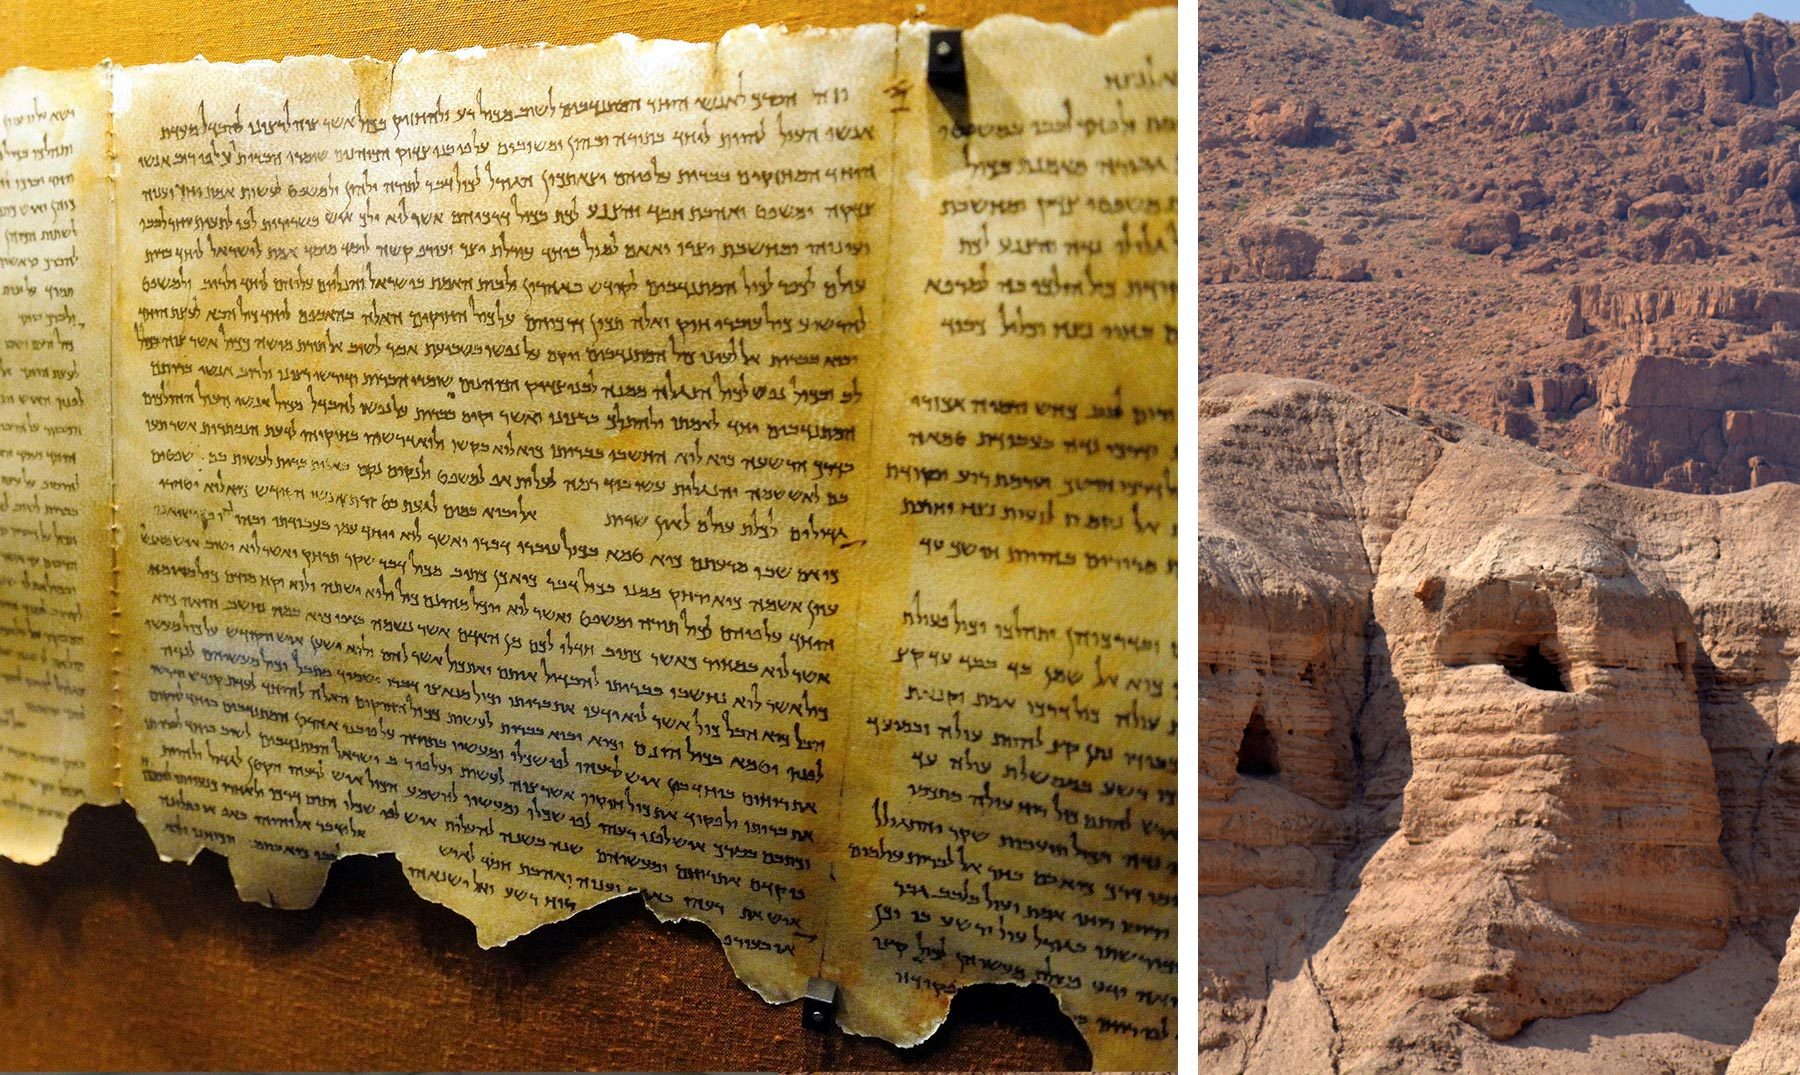 The Dead Sea Scrolls were found in caves.